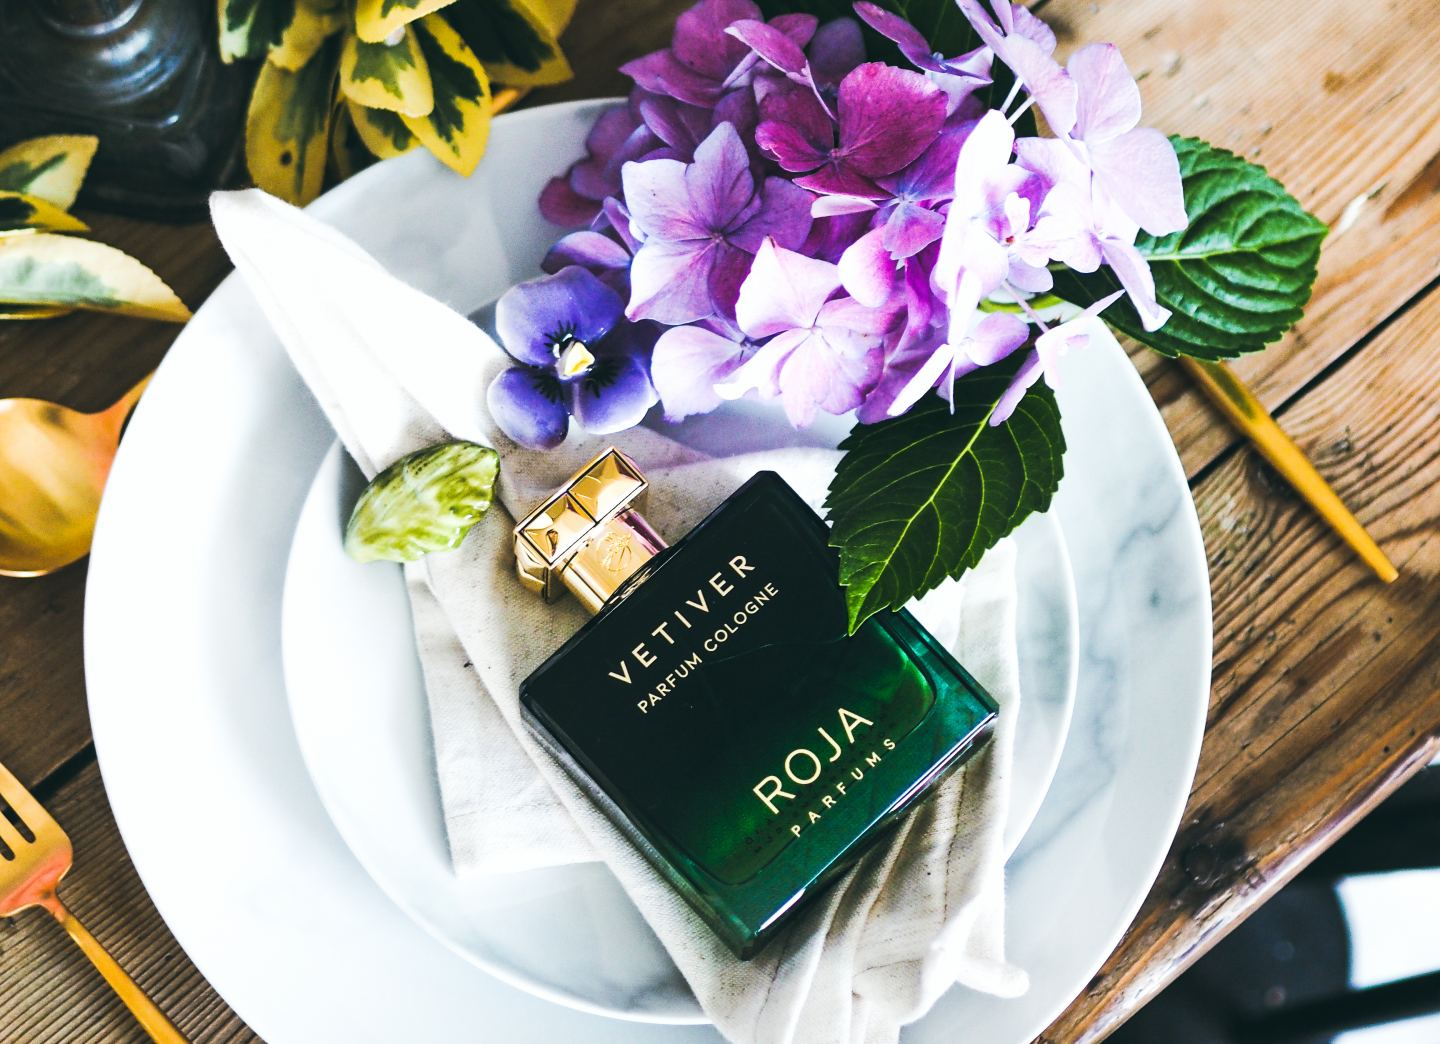 vetiver roja parfums perfume perfume review fragrance copy